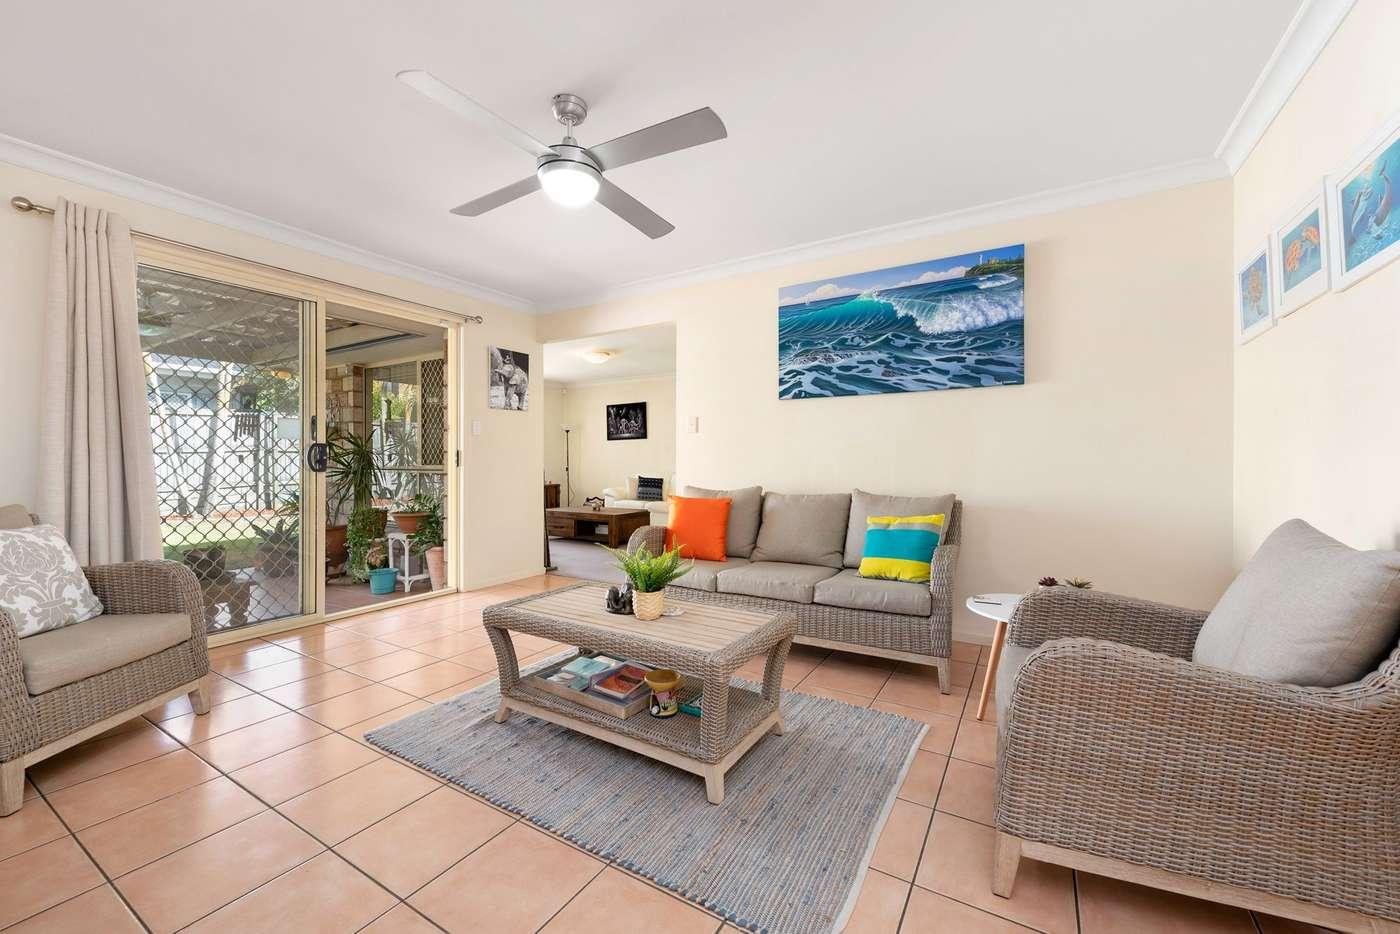 Main view of Homely house listing, 6 Sunningdale Street, Oxley QLD 4075